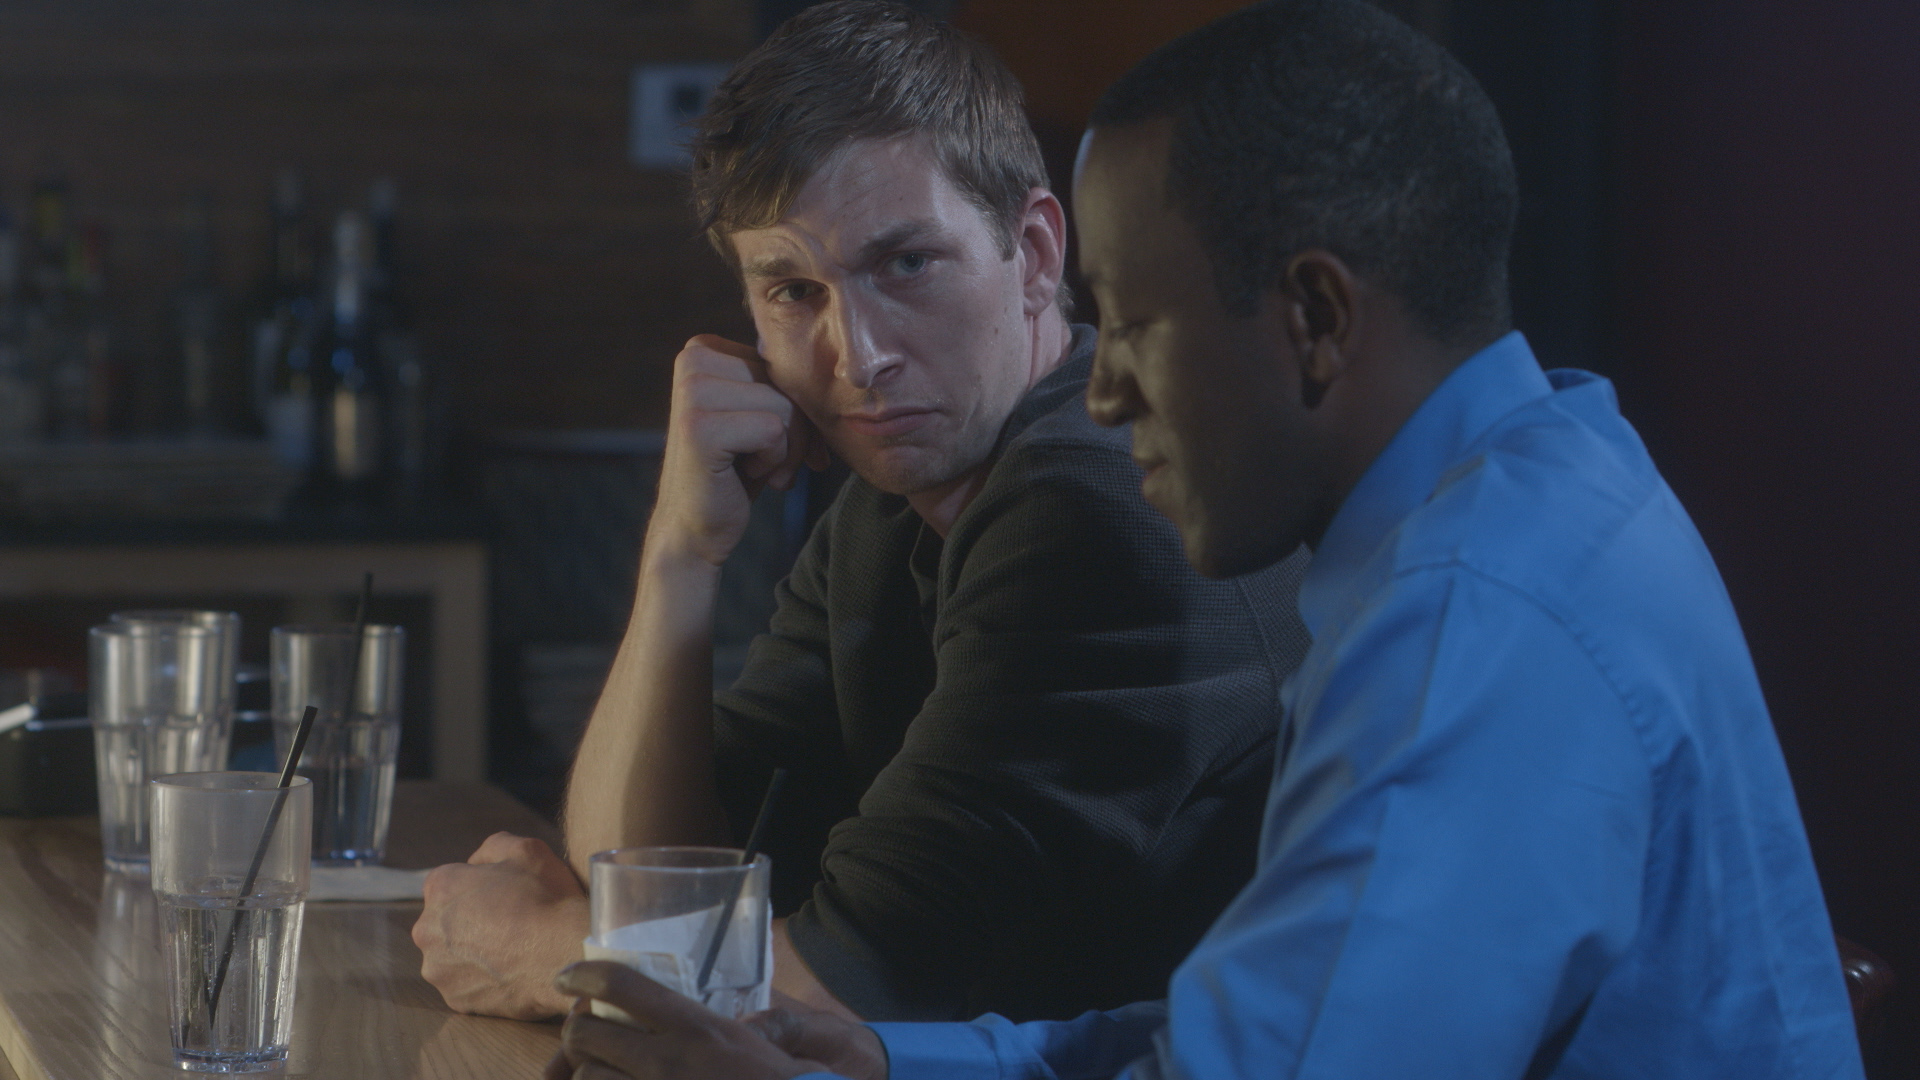 Chris Fisher and Jamaal Eversley in Geena Matuson's (@geenamatuson) short 'Depends,' filmed at Rock 'n' Roll Rib Joint in Medfield, MA. Cinematography by Denez McAdoo.